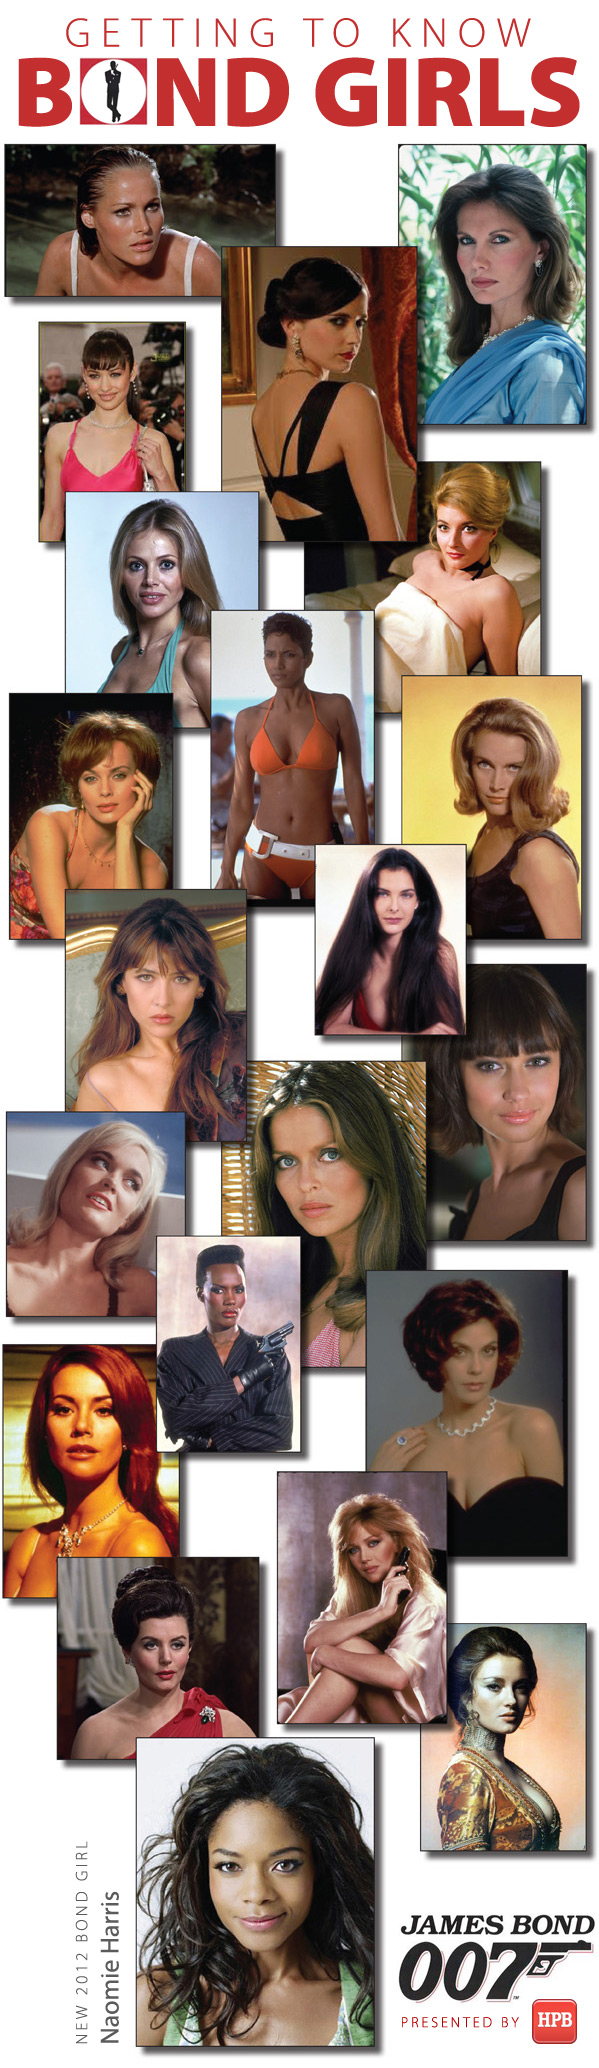 Anticipating james bond s skyfall 8 things you may not have known about bond girls the half - Deguisement james bond girl ...